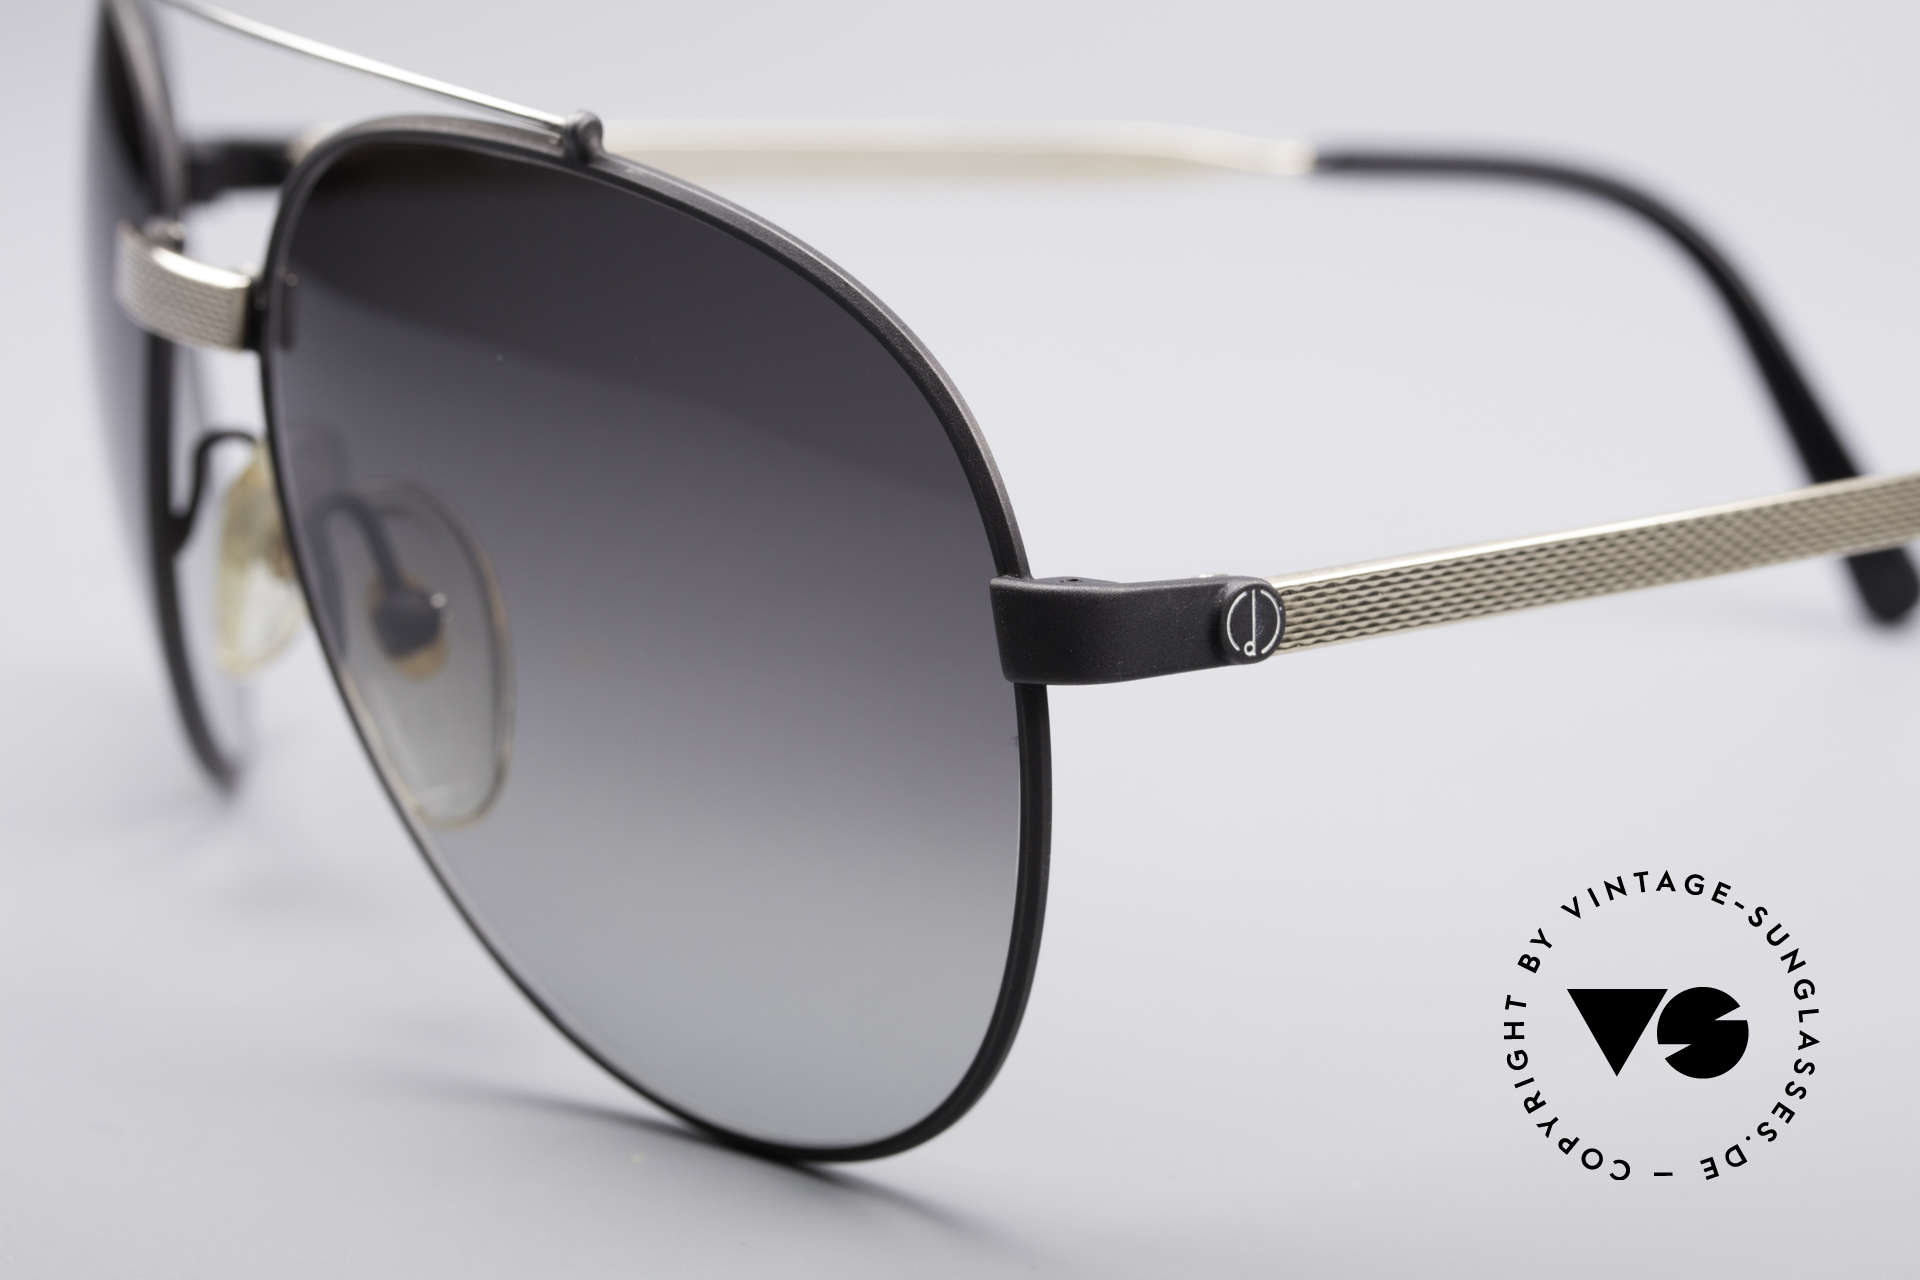 Dunhill 6023 80's Luxury Sunglasses Aviator, simply, a high-class and elegant vintage classic, Made for Men